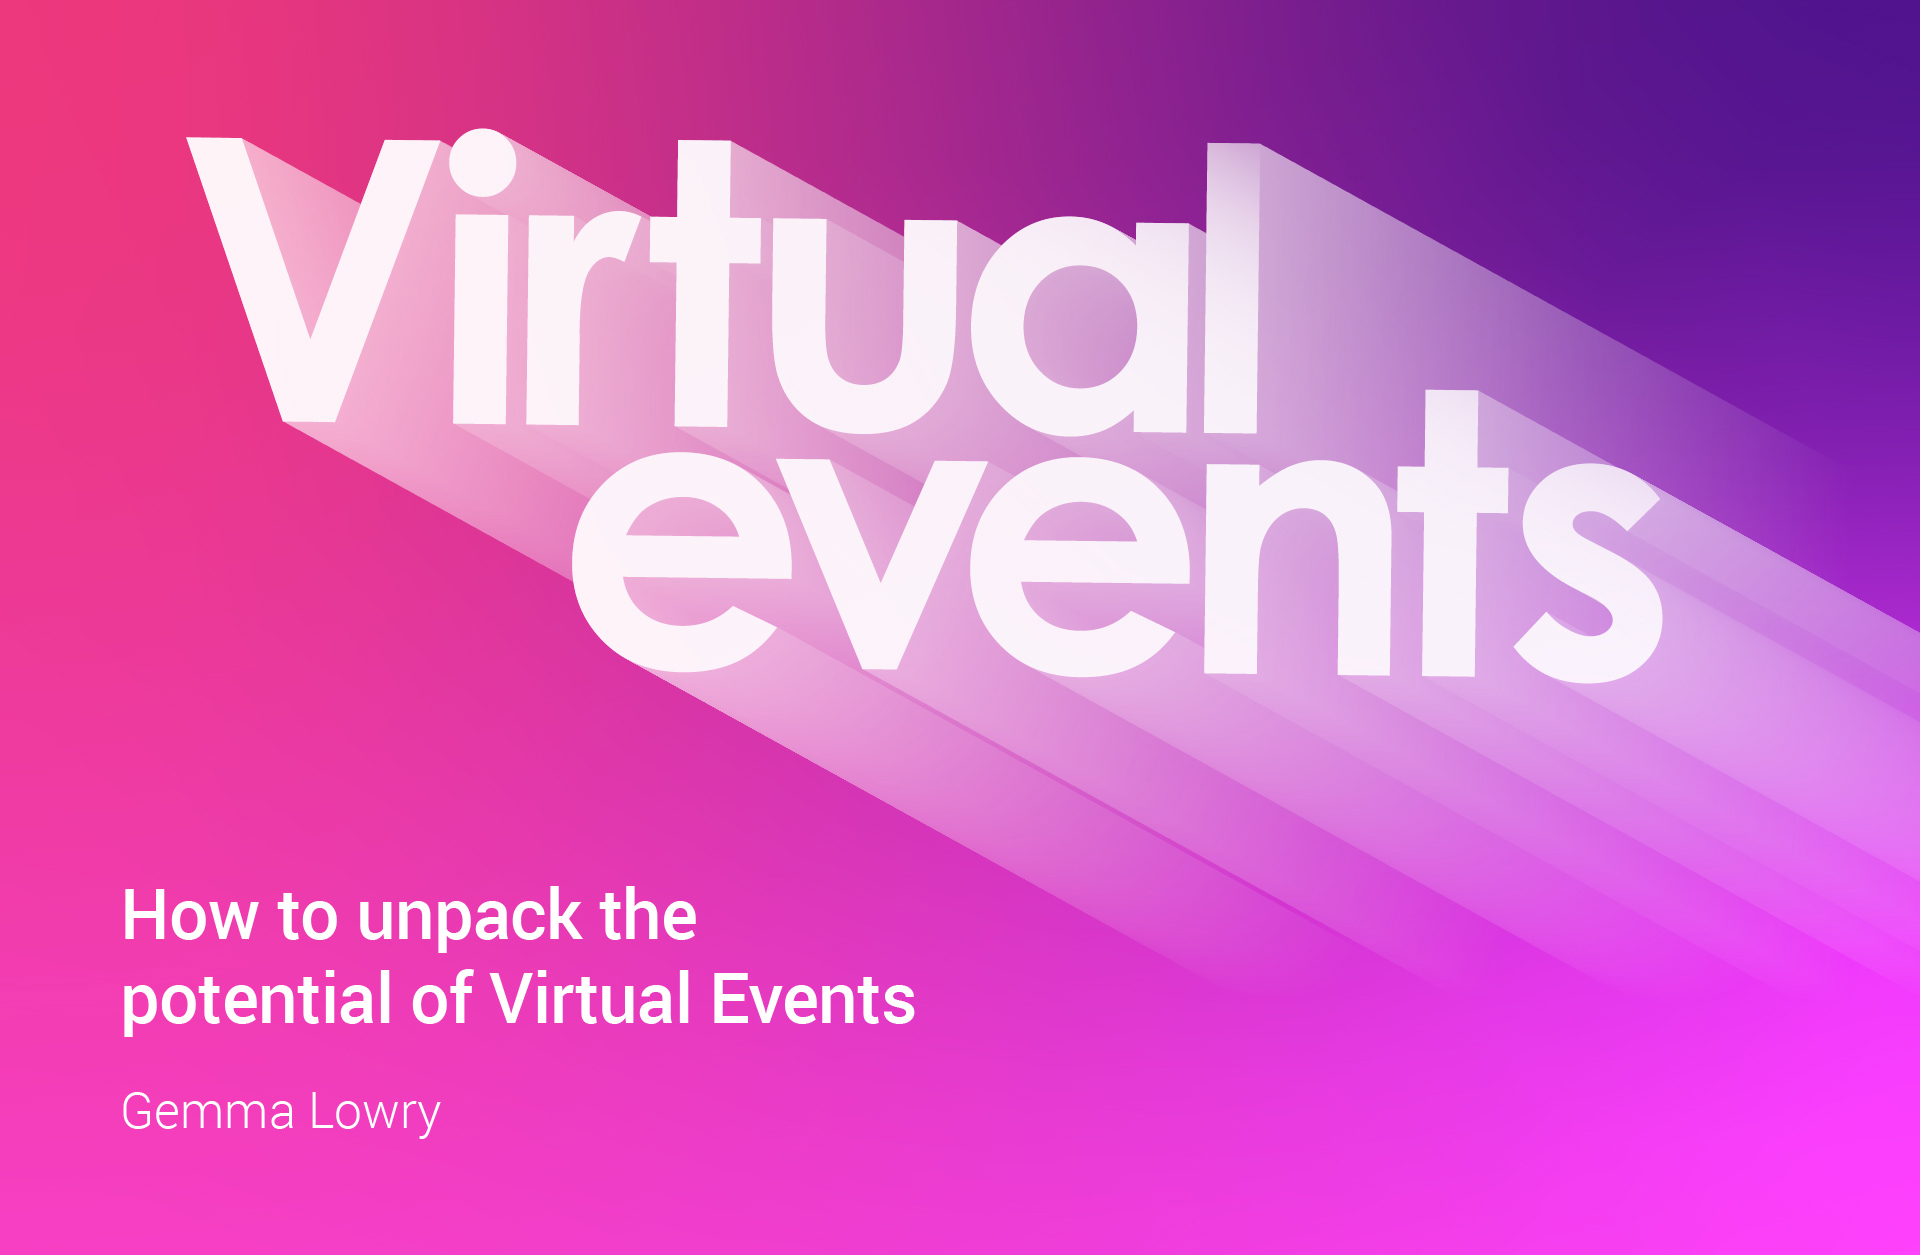 How to Unpack the Potential of Virtual Events